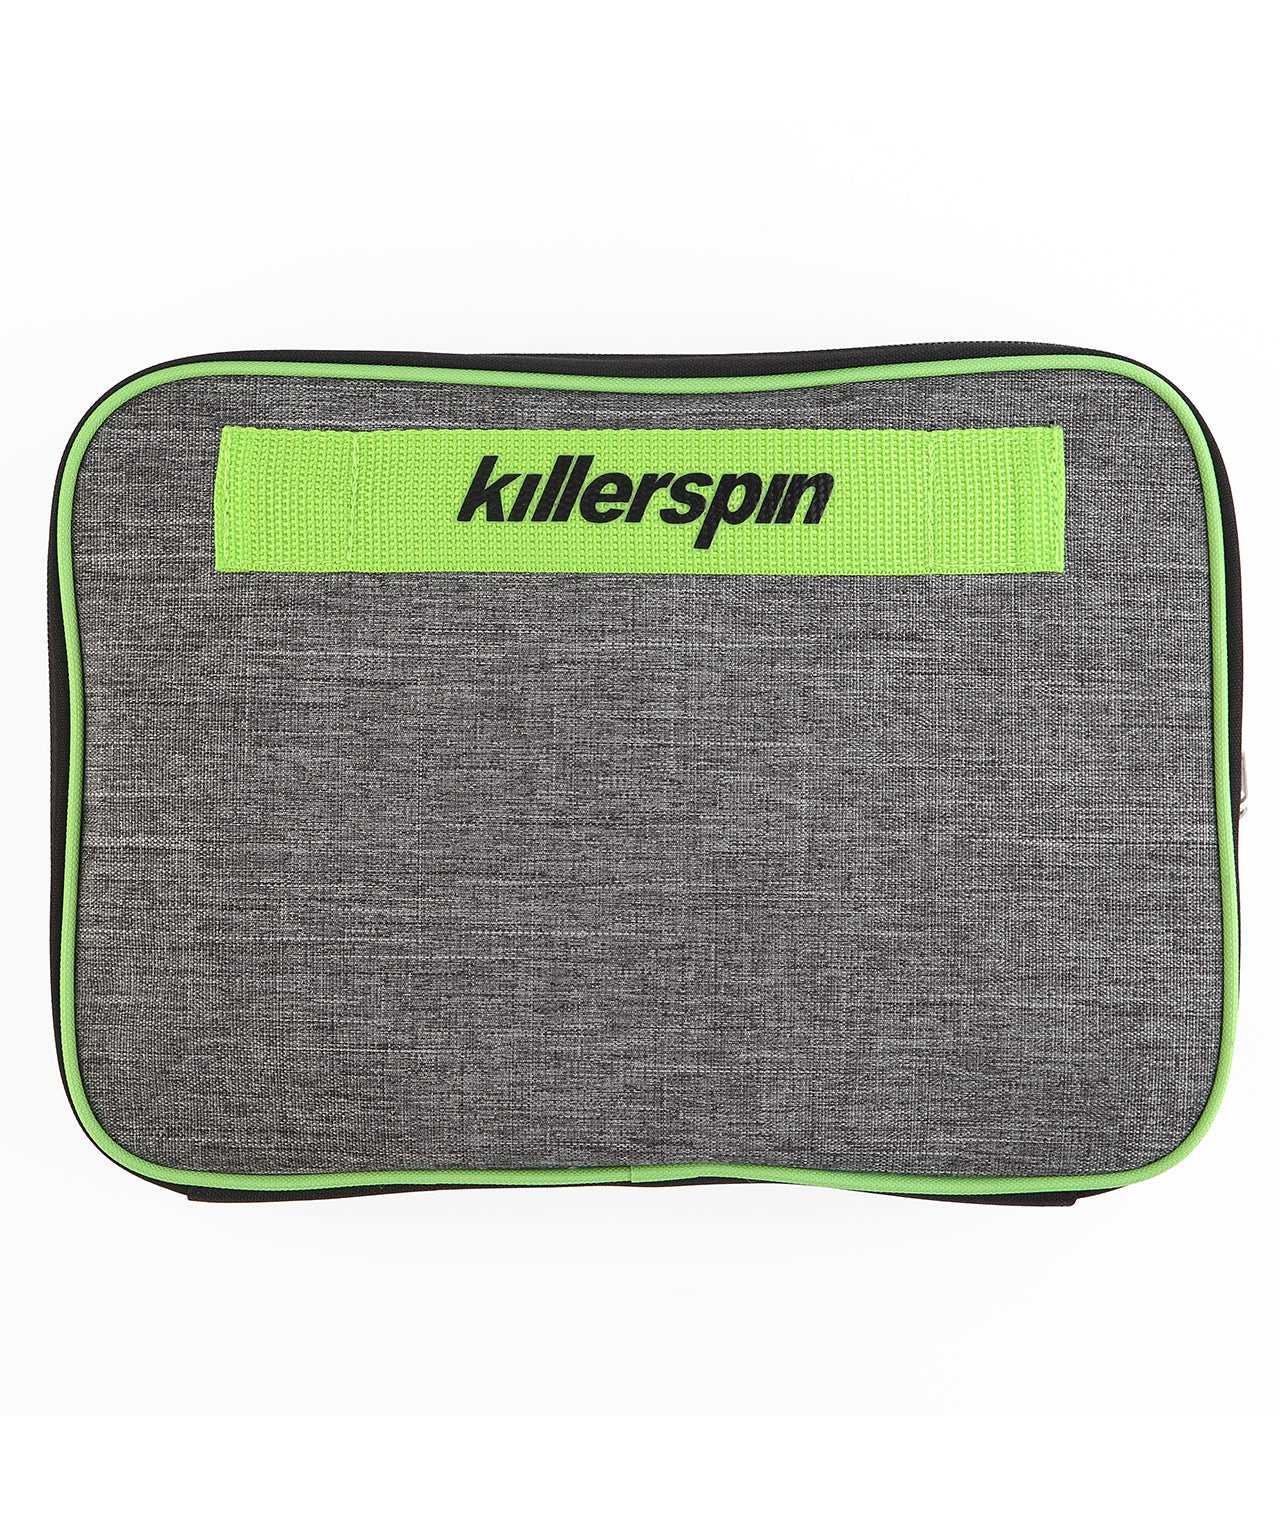 Killerspin Optima Ping Pong Paddle Case - Handle